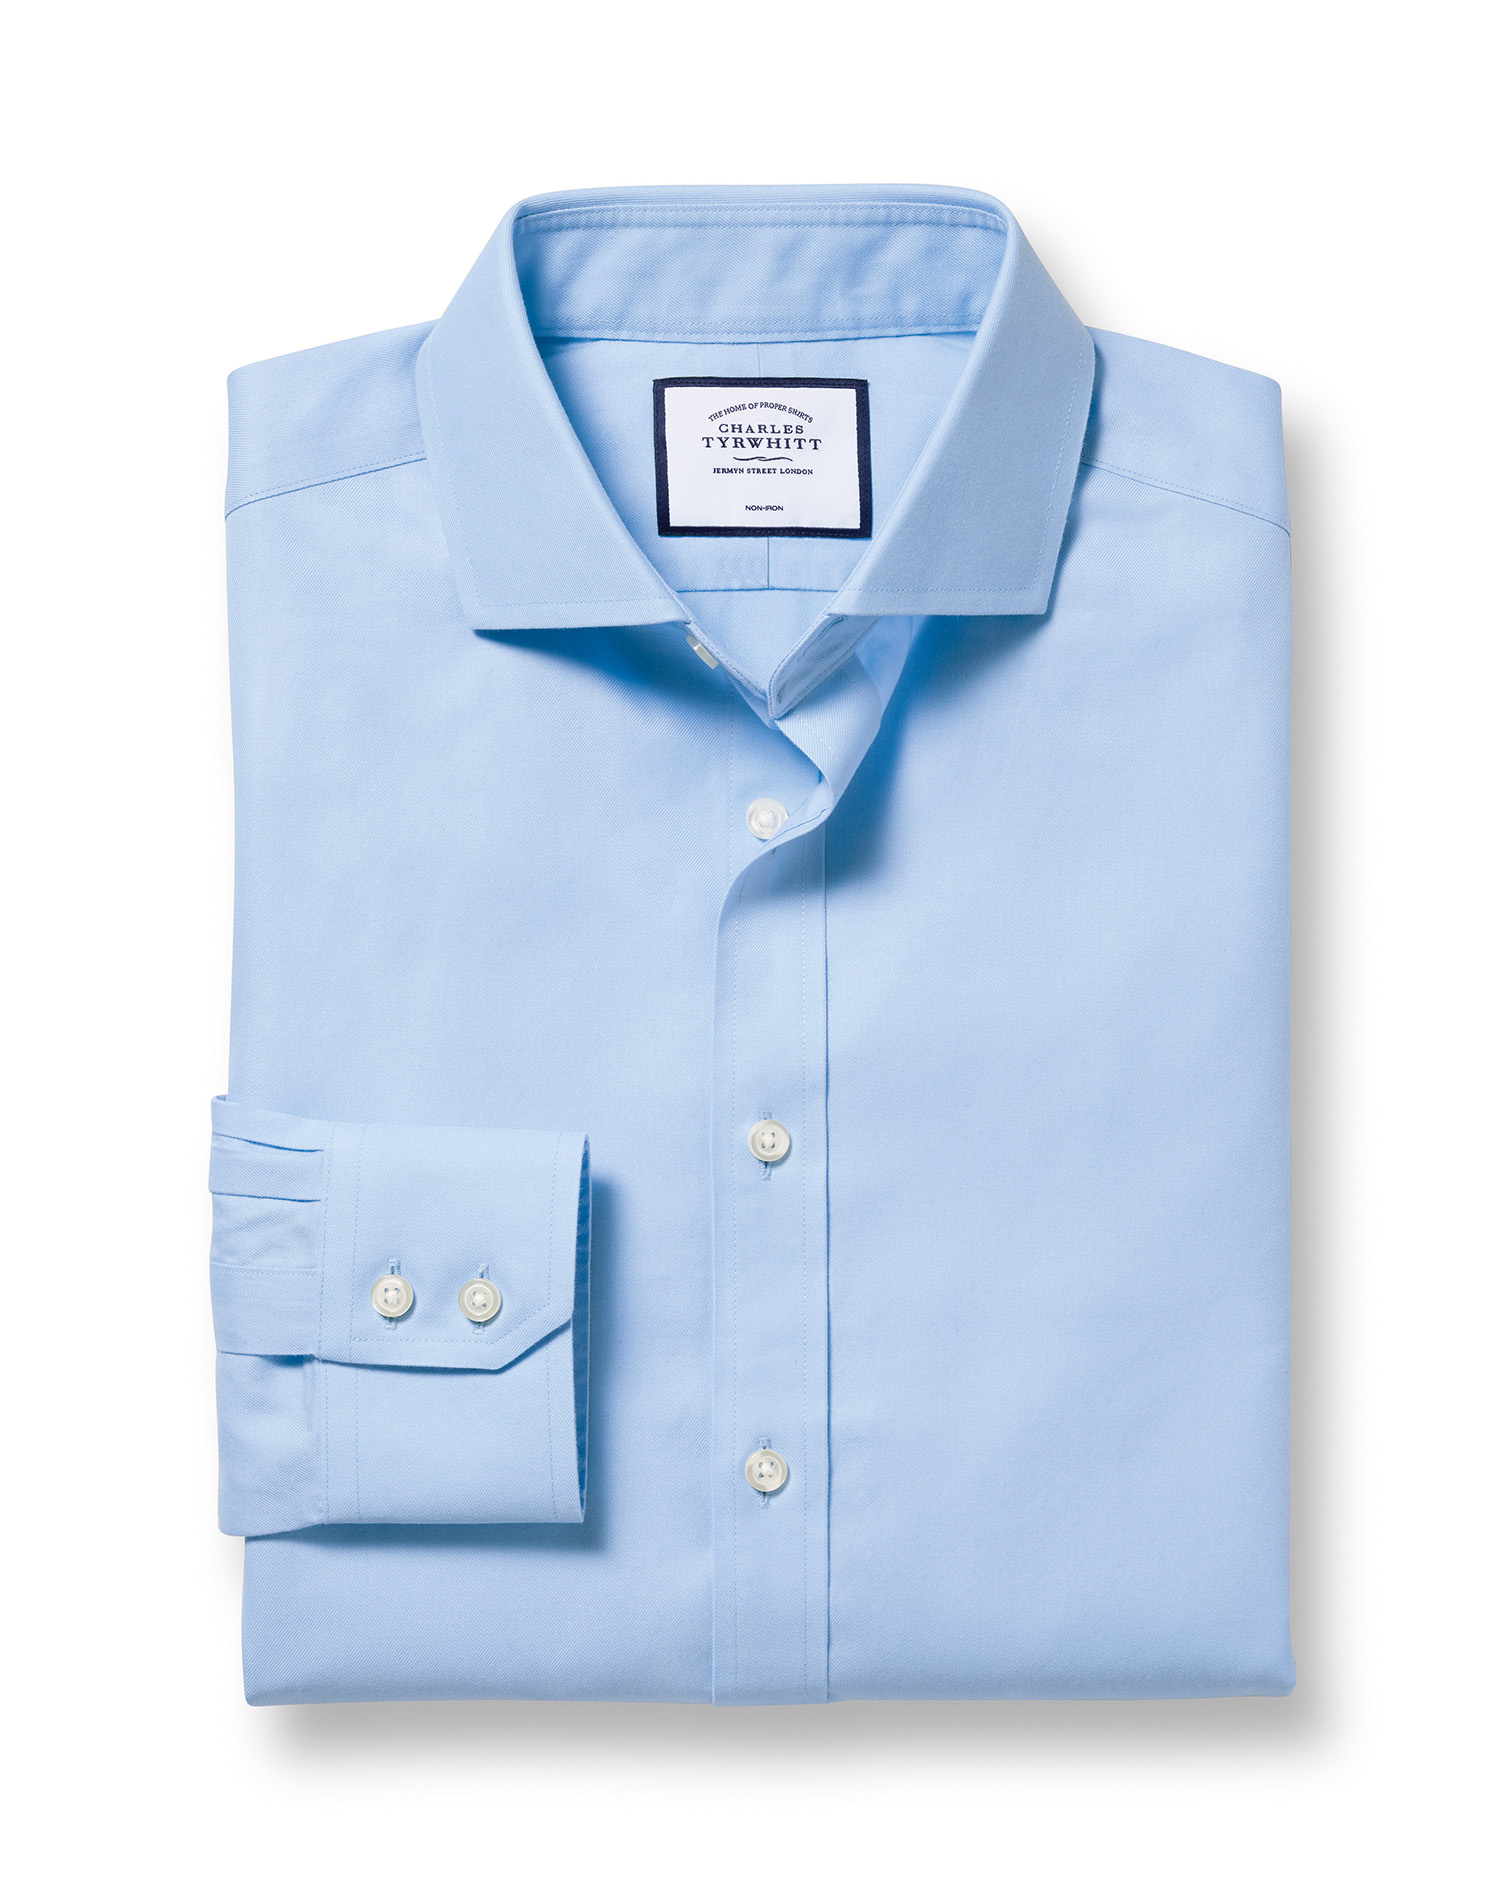 Slim Fit Cutaway Non-Iron Twill Sky Blue Cotton Formal Shirt Single Cuff Size 17.5/35 by Charles Tyr